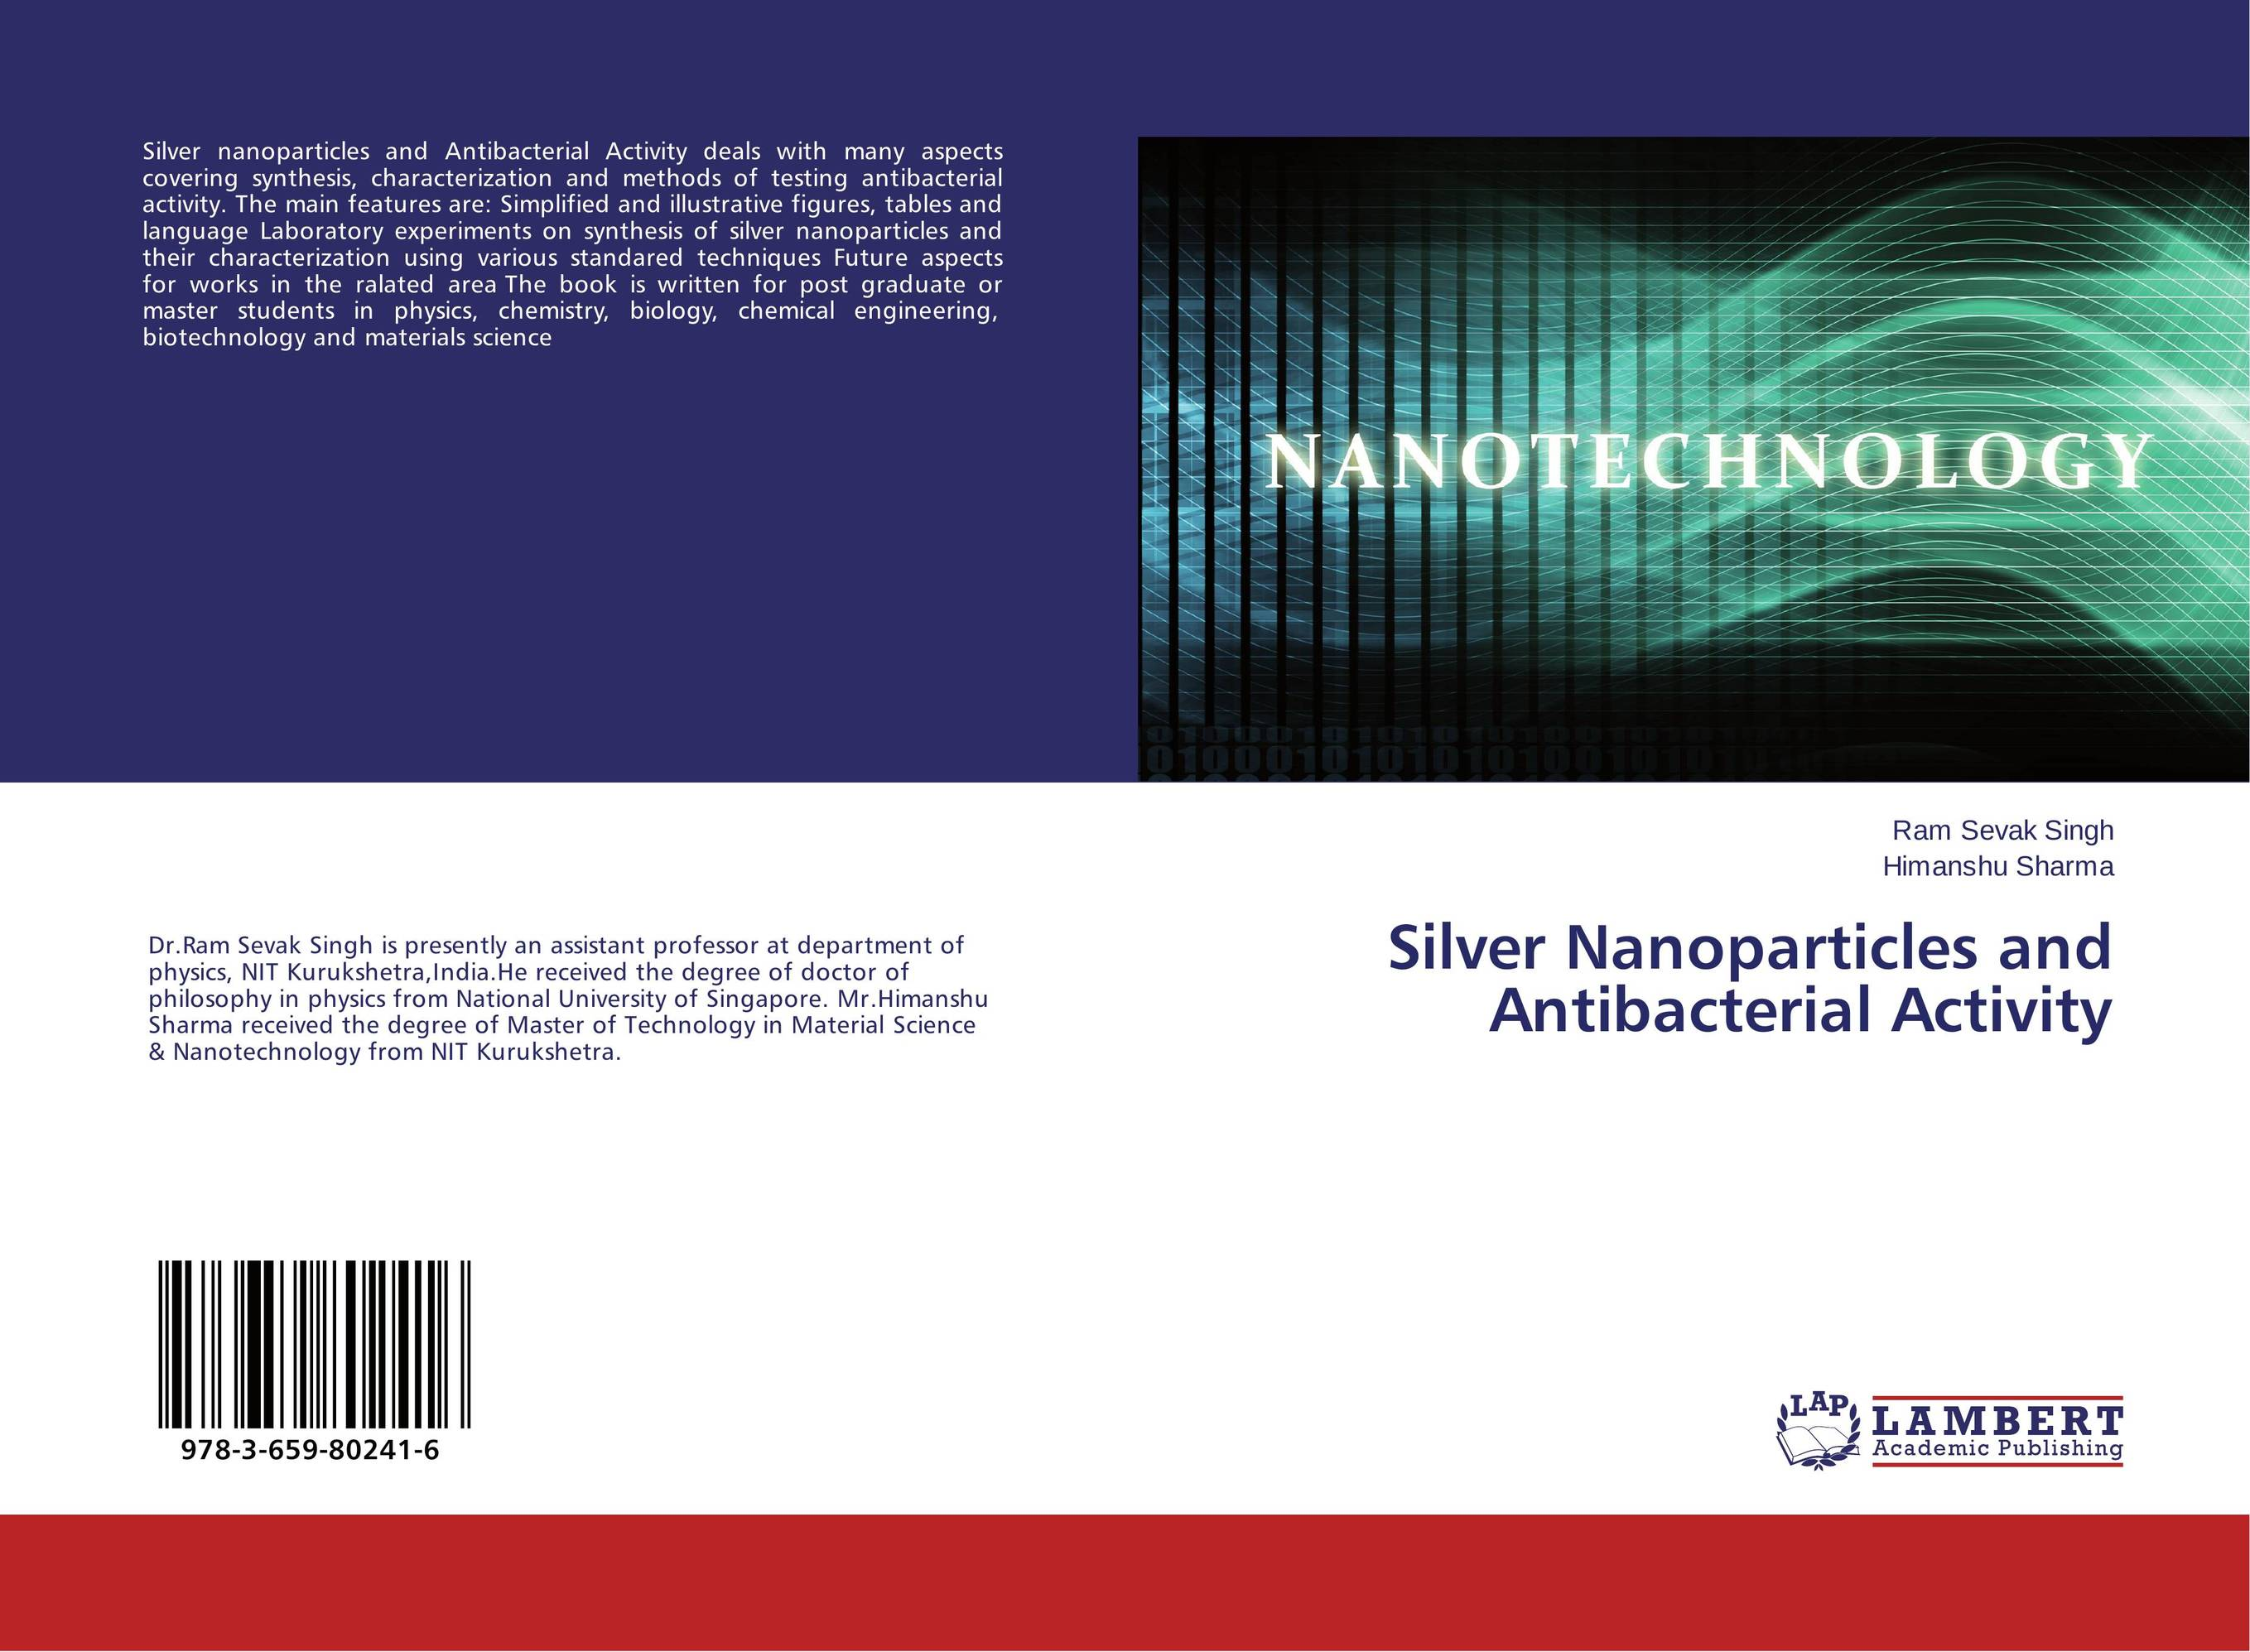 Silver Nanoparticles and Antibacterial Activity purnima sareen sundeep kumar and rakesh singh molecular and pathological characterization of slow rusting in wheat